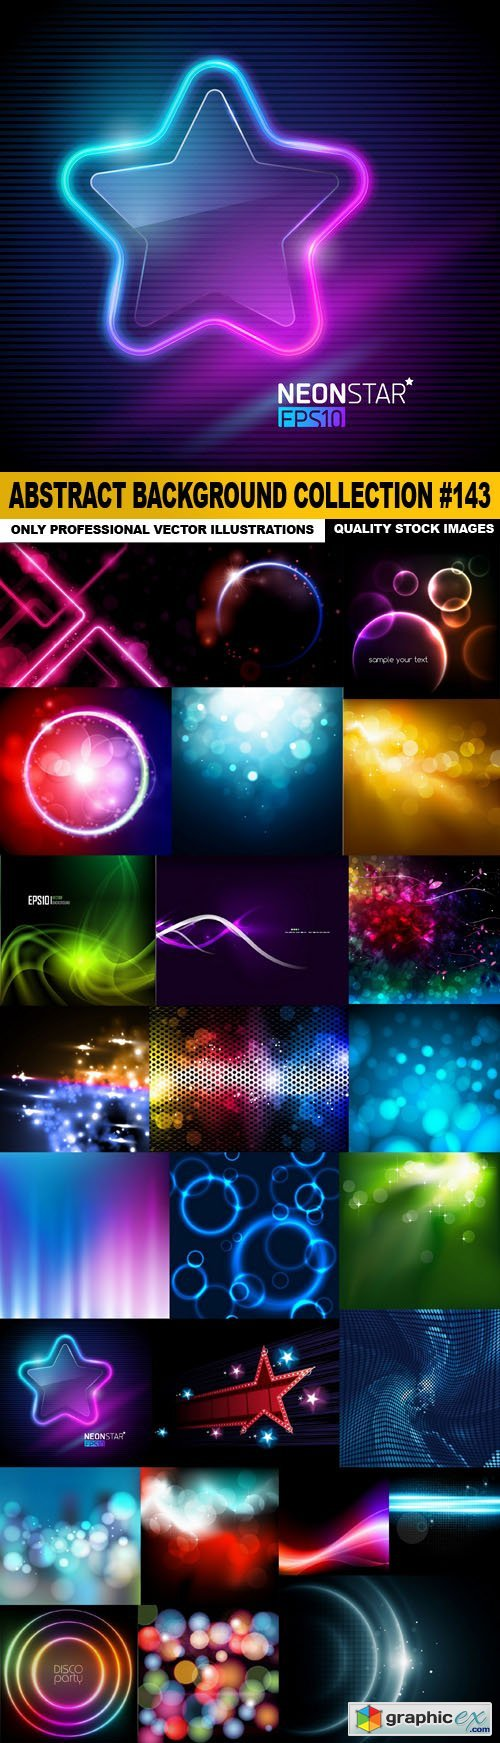 Abstract Background Collection #143